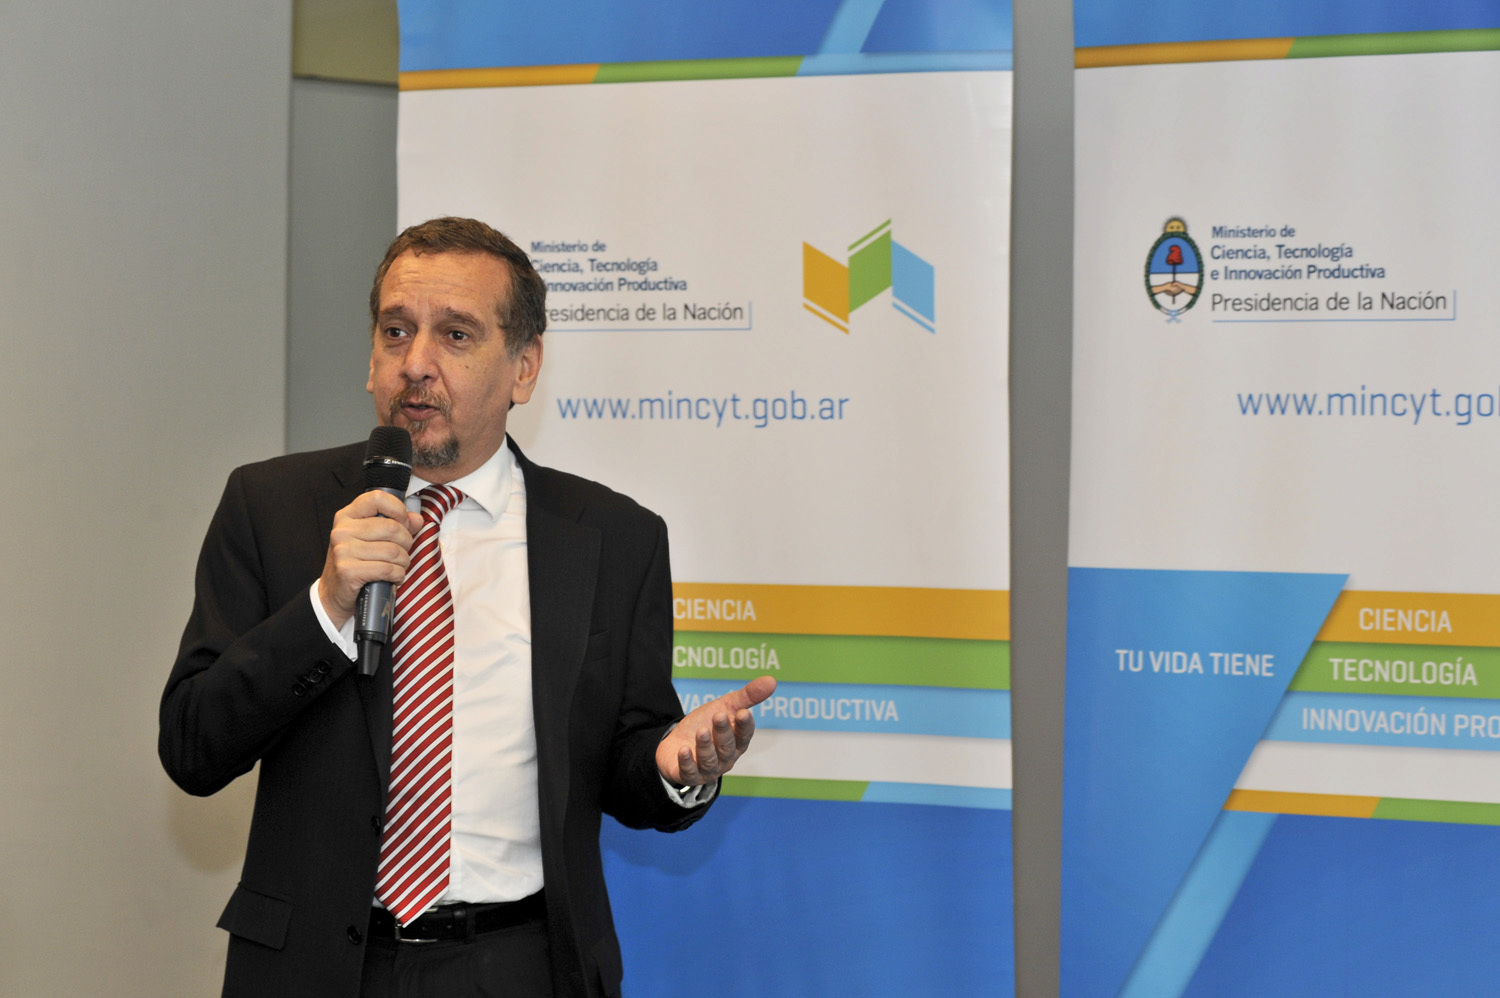 Ministry of Science participated in the II National Congress of Foresight in Mendoza